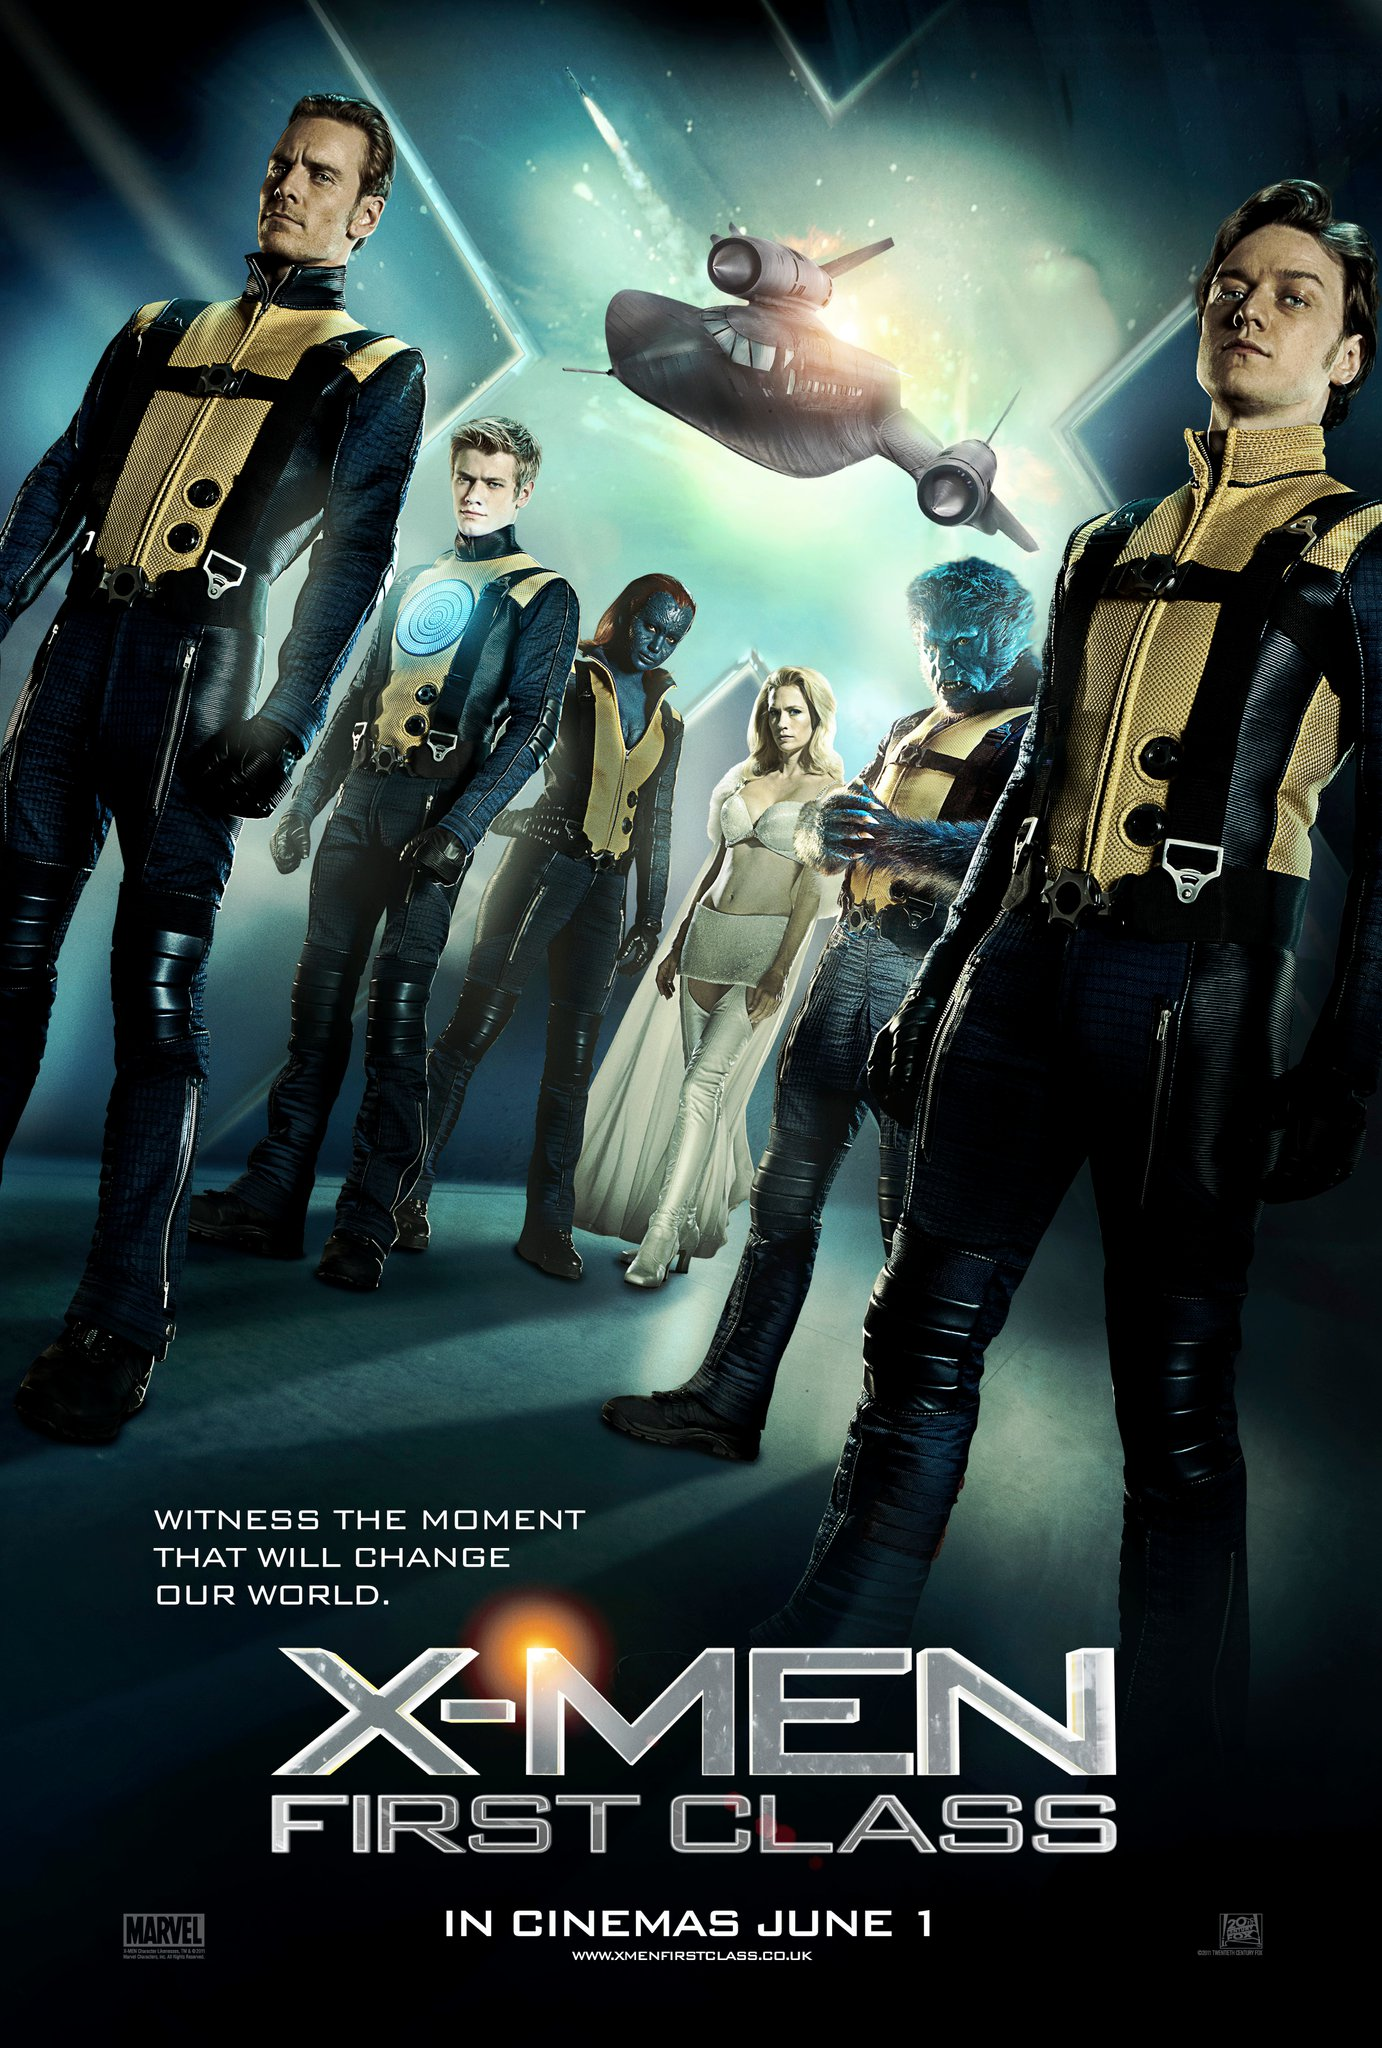 https://cinemarevius.files.wordpress.com/2014/05/x-men-first-class-20111.jpg